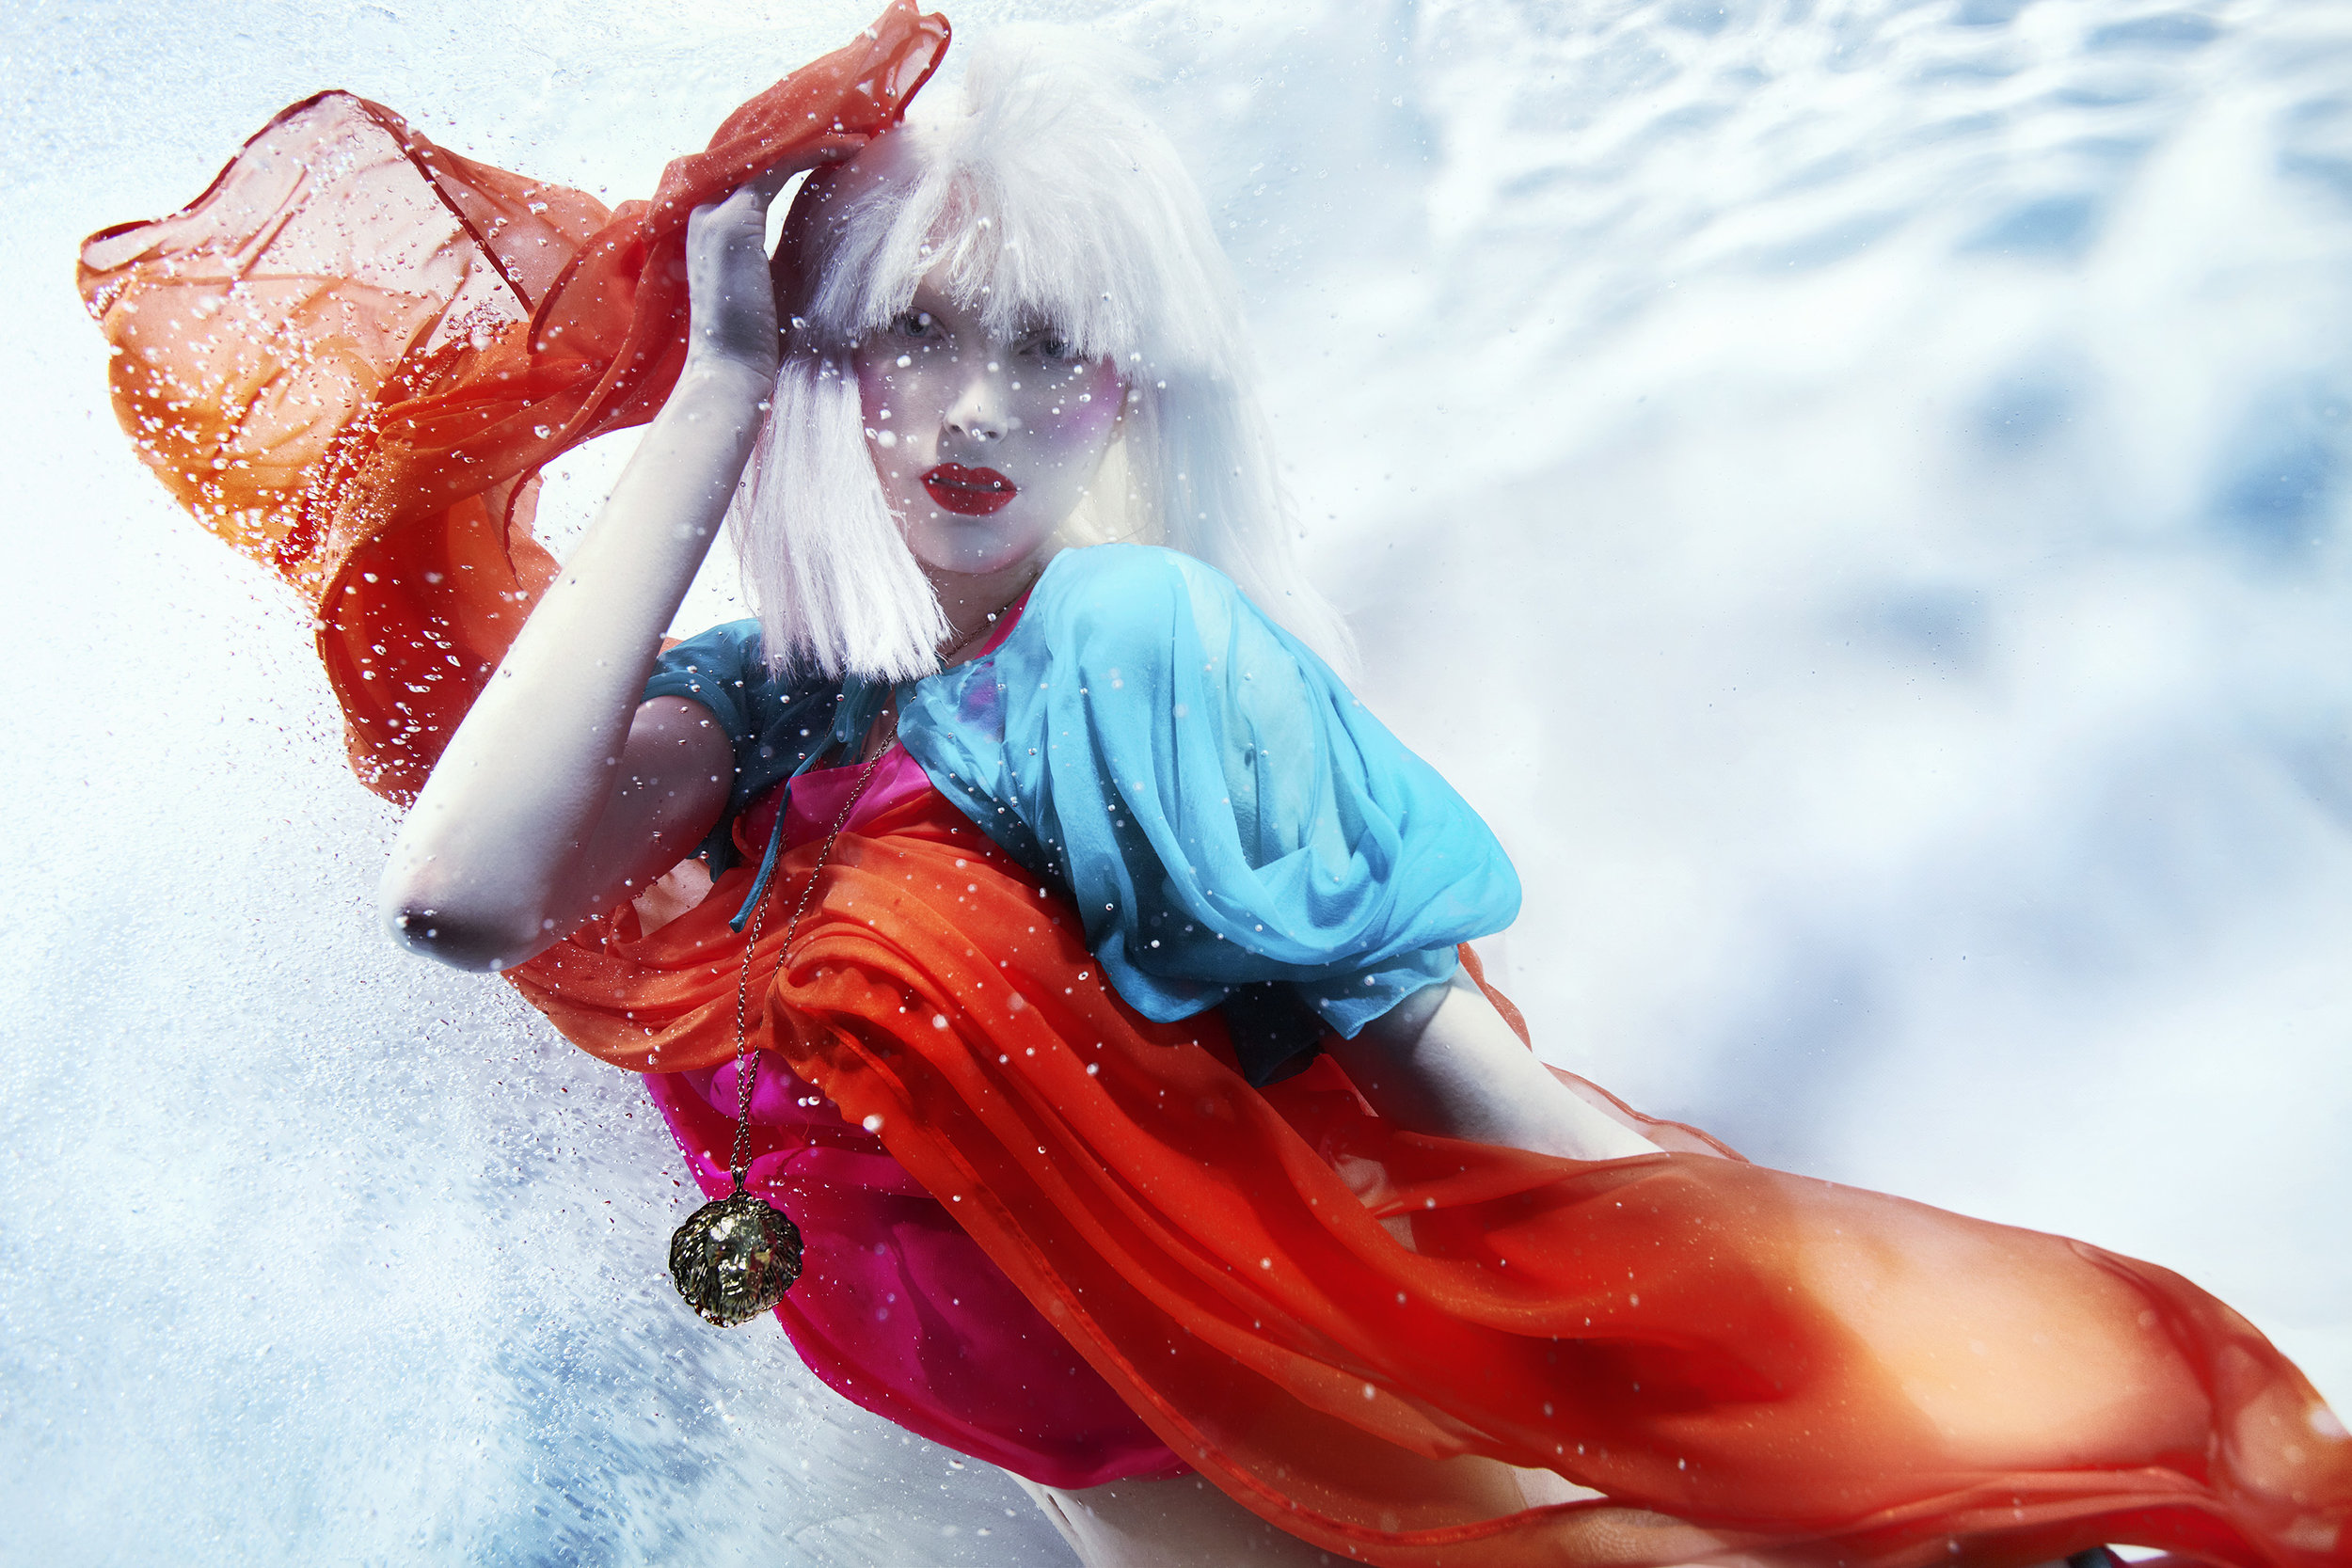 Susanne Stemmer girl underwater with white hair and red scarf